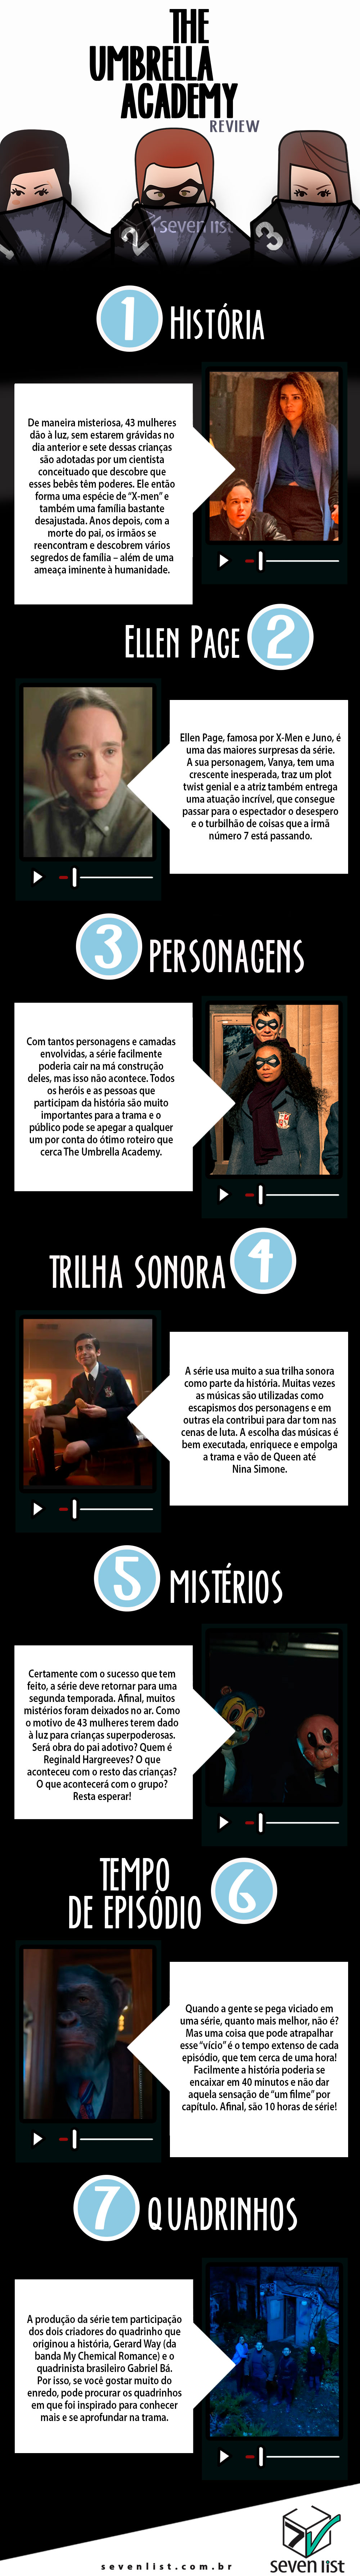 crítica de the umbrella academy da netflix